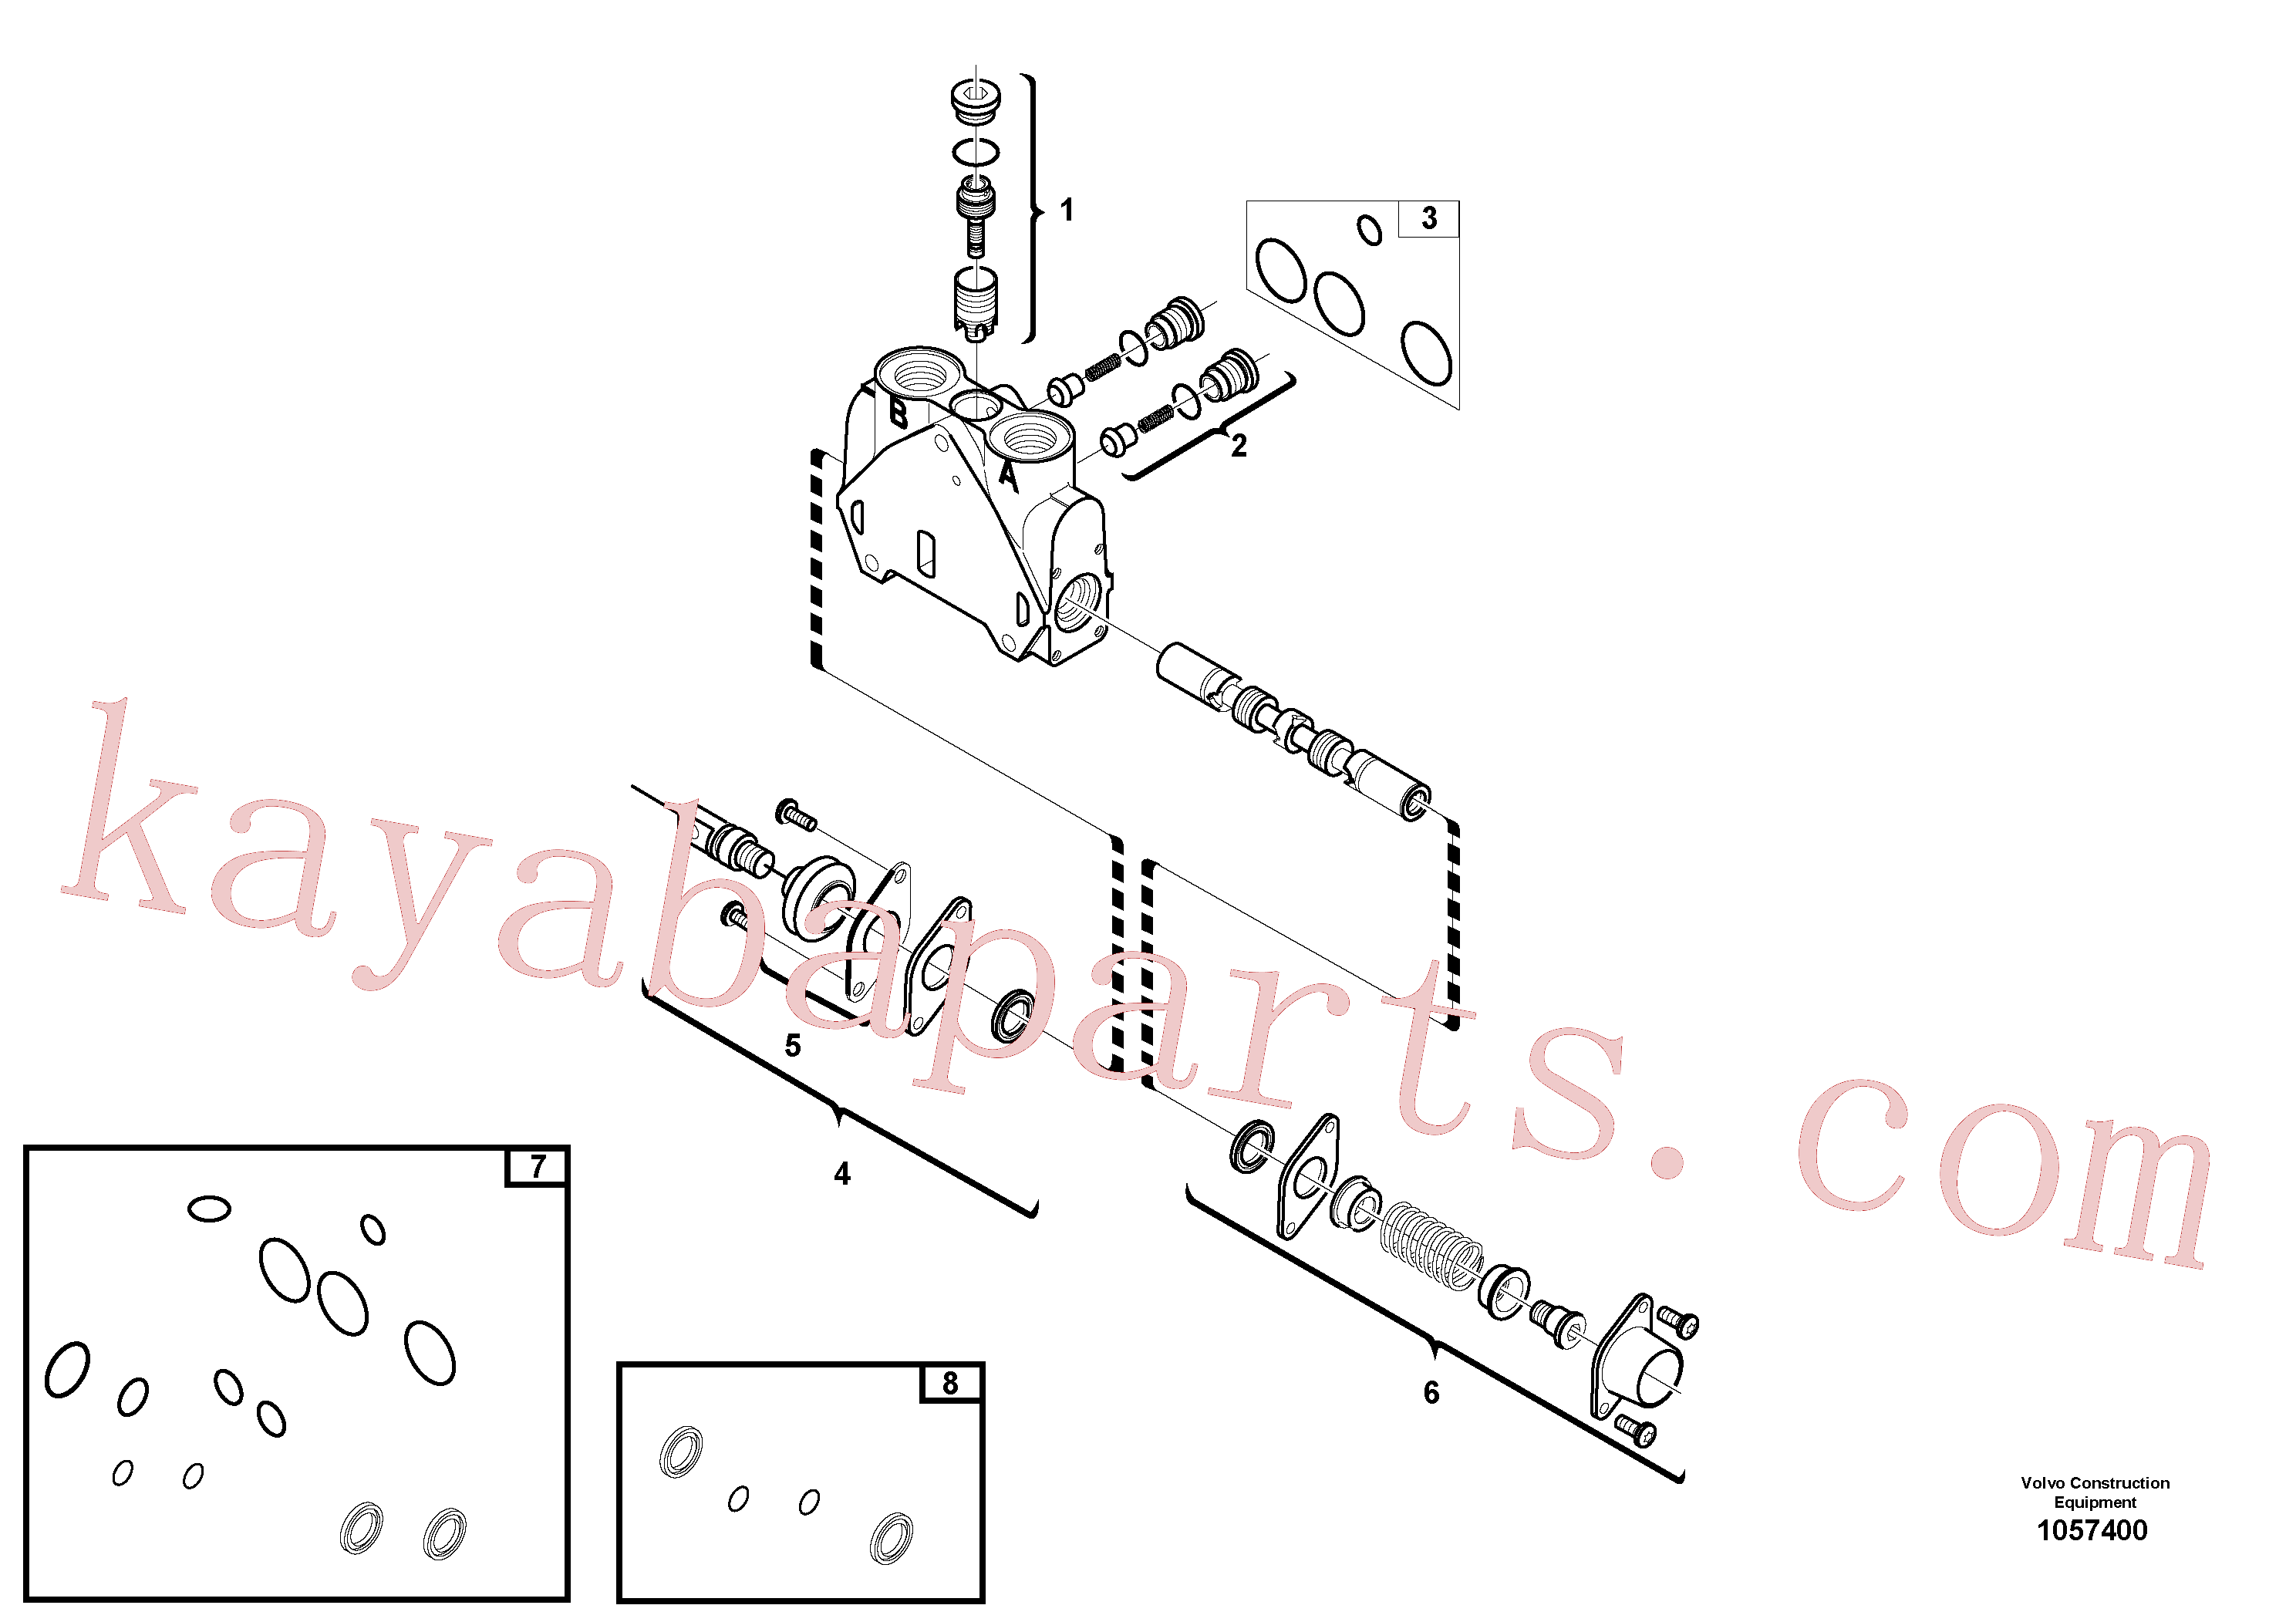 VOE15171847 for Volvo Valve section(1057400 assembly)